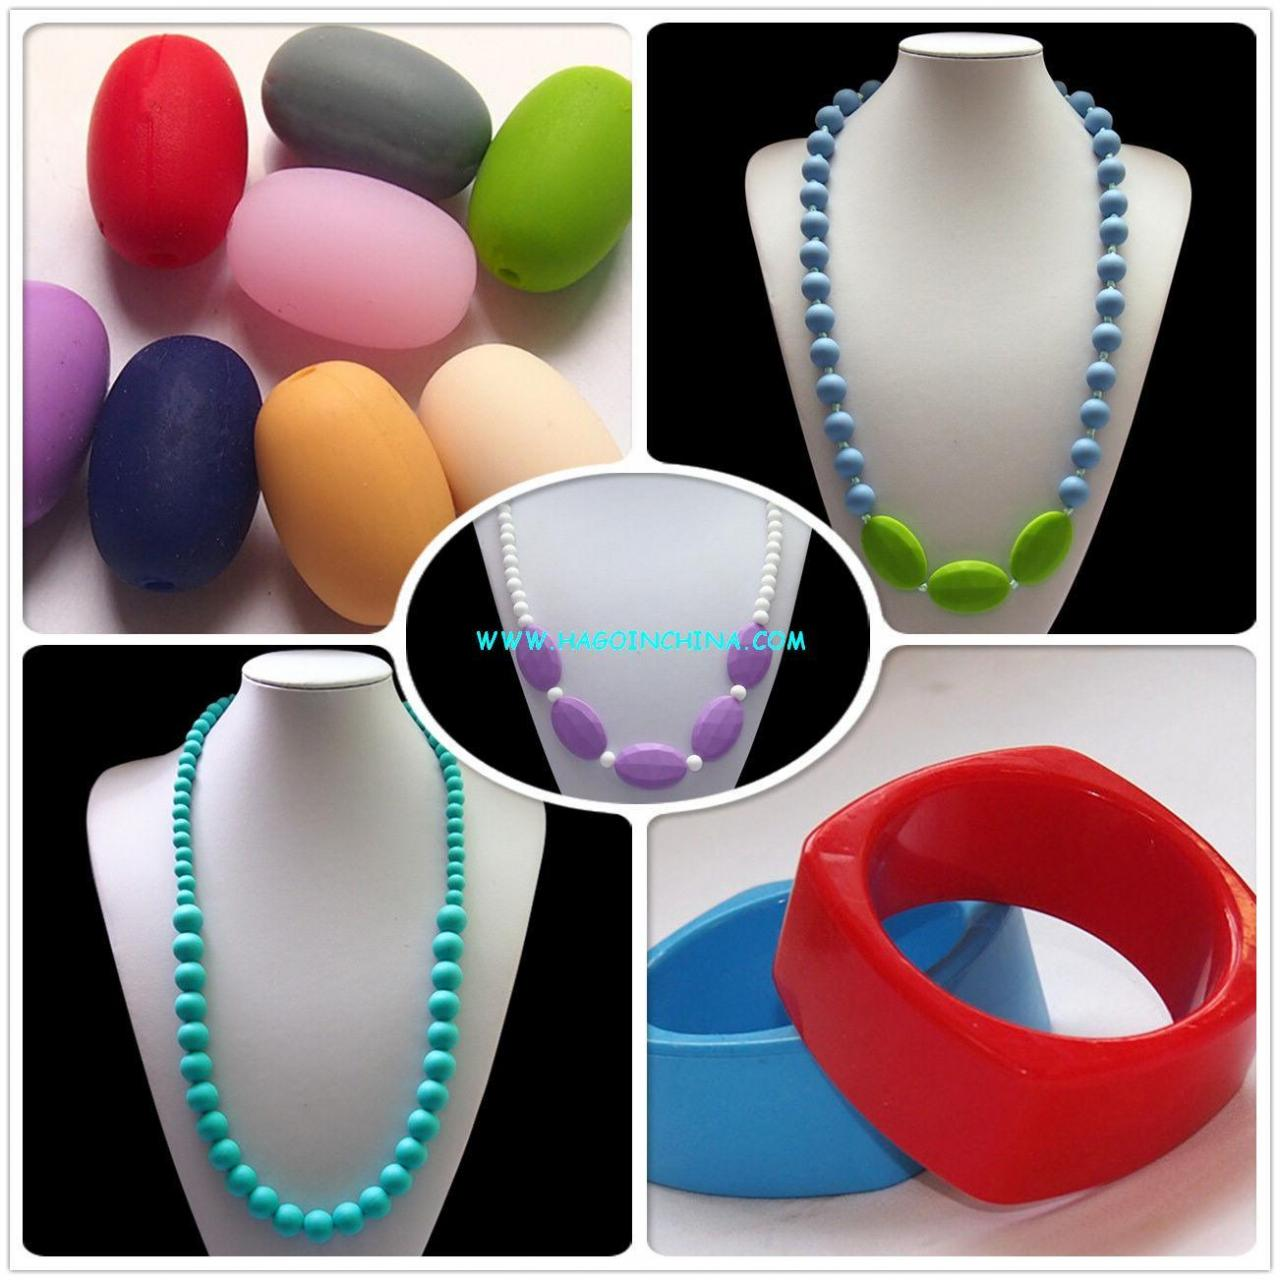 Buy cheap silicone rubber jewelry from wholesalers